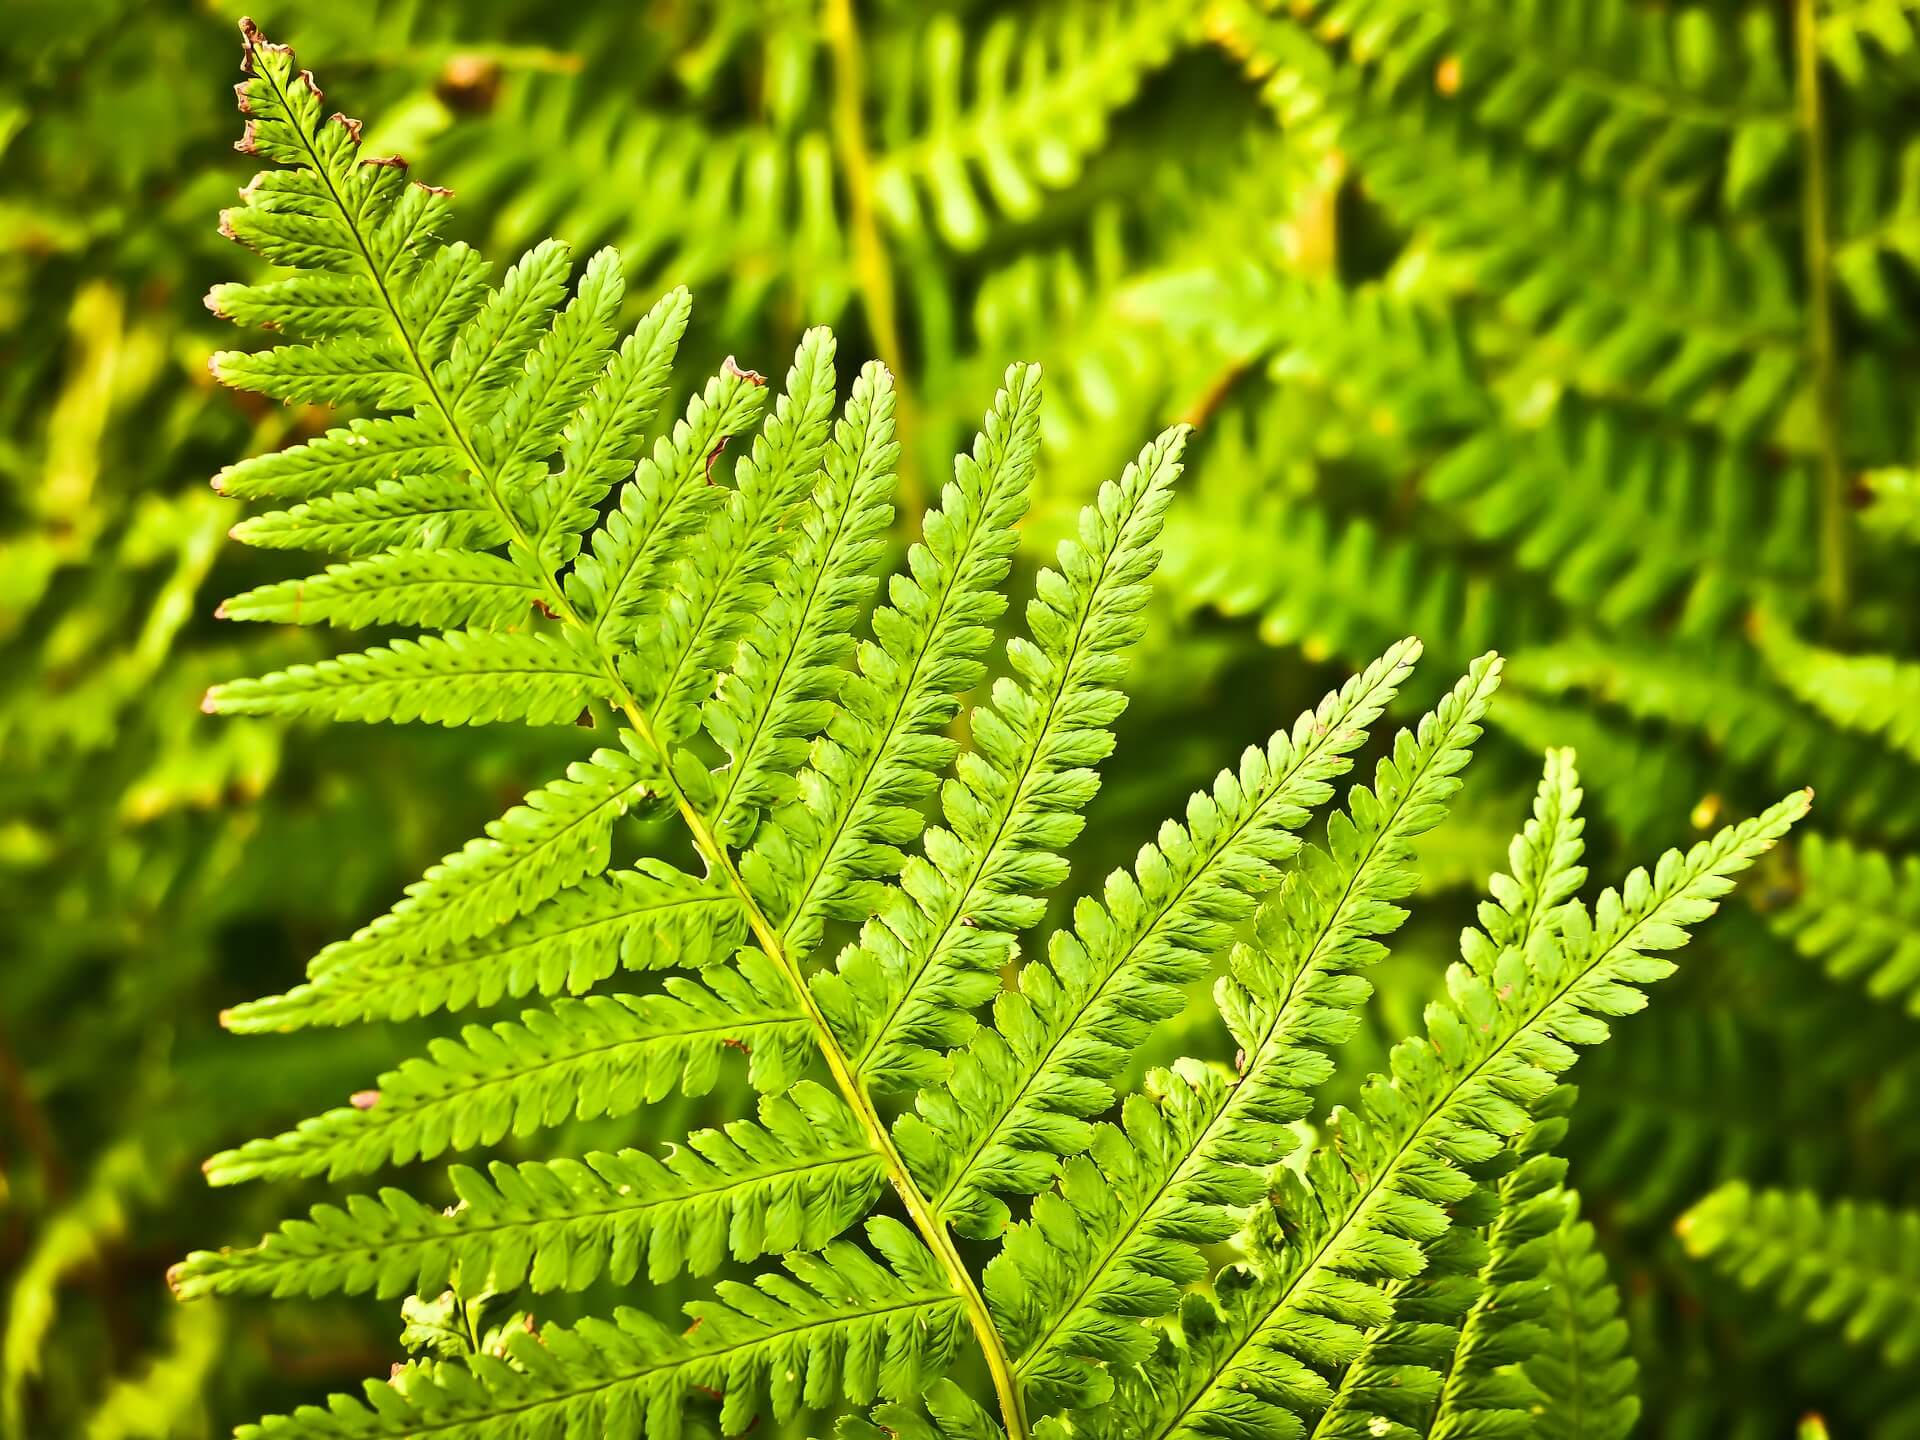 An upclose picture of fern fronds